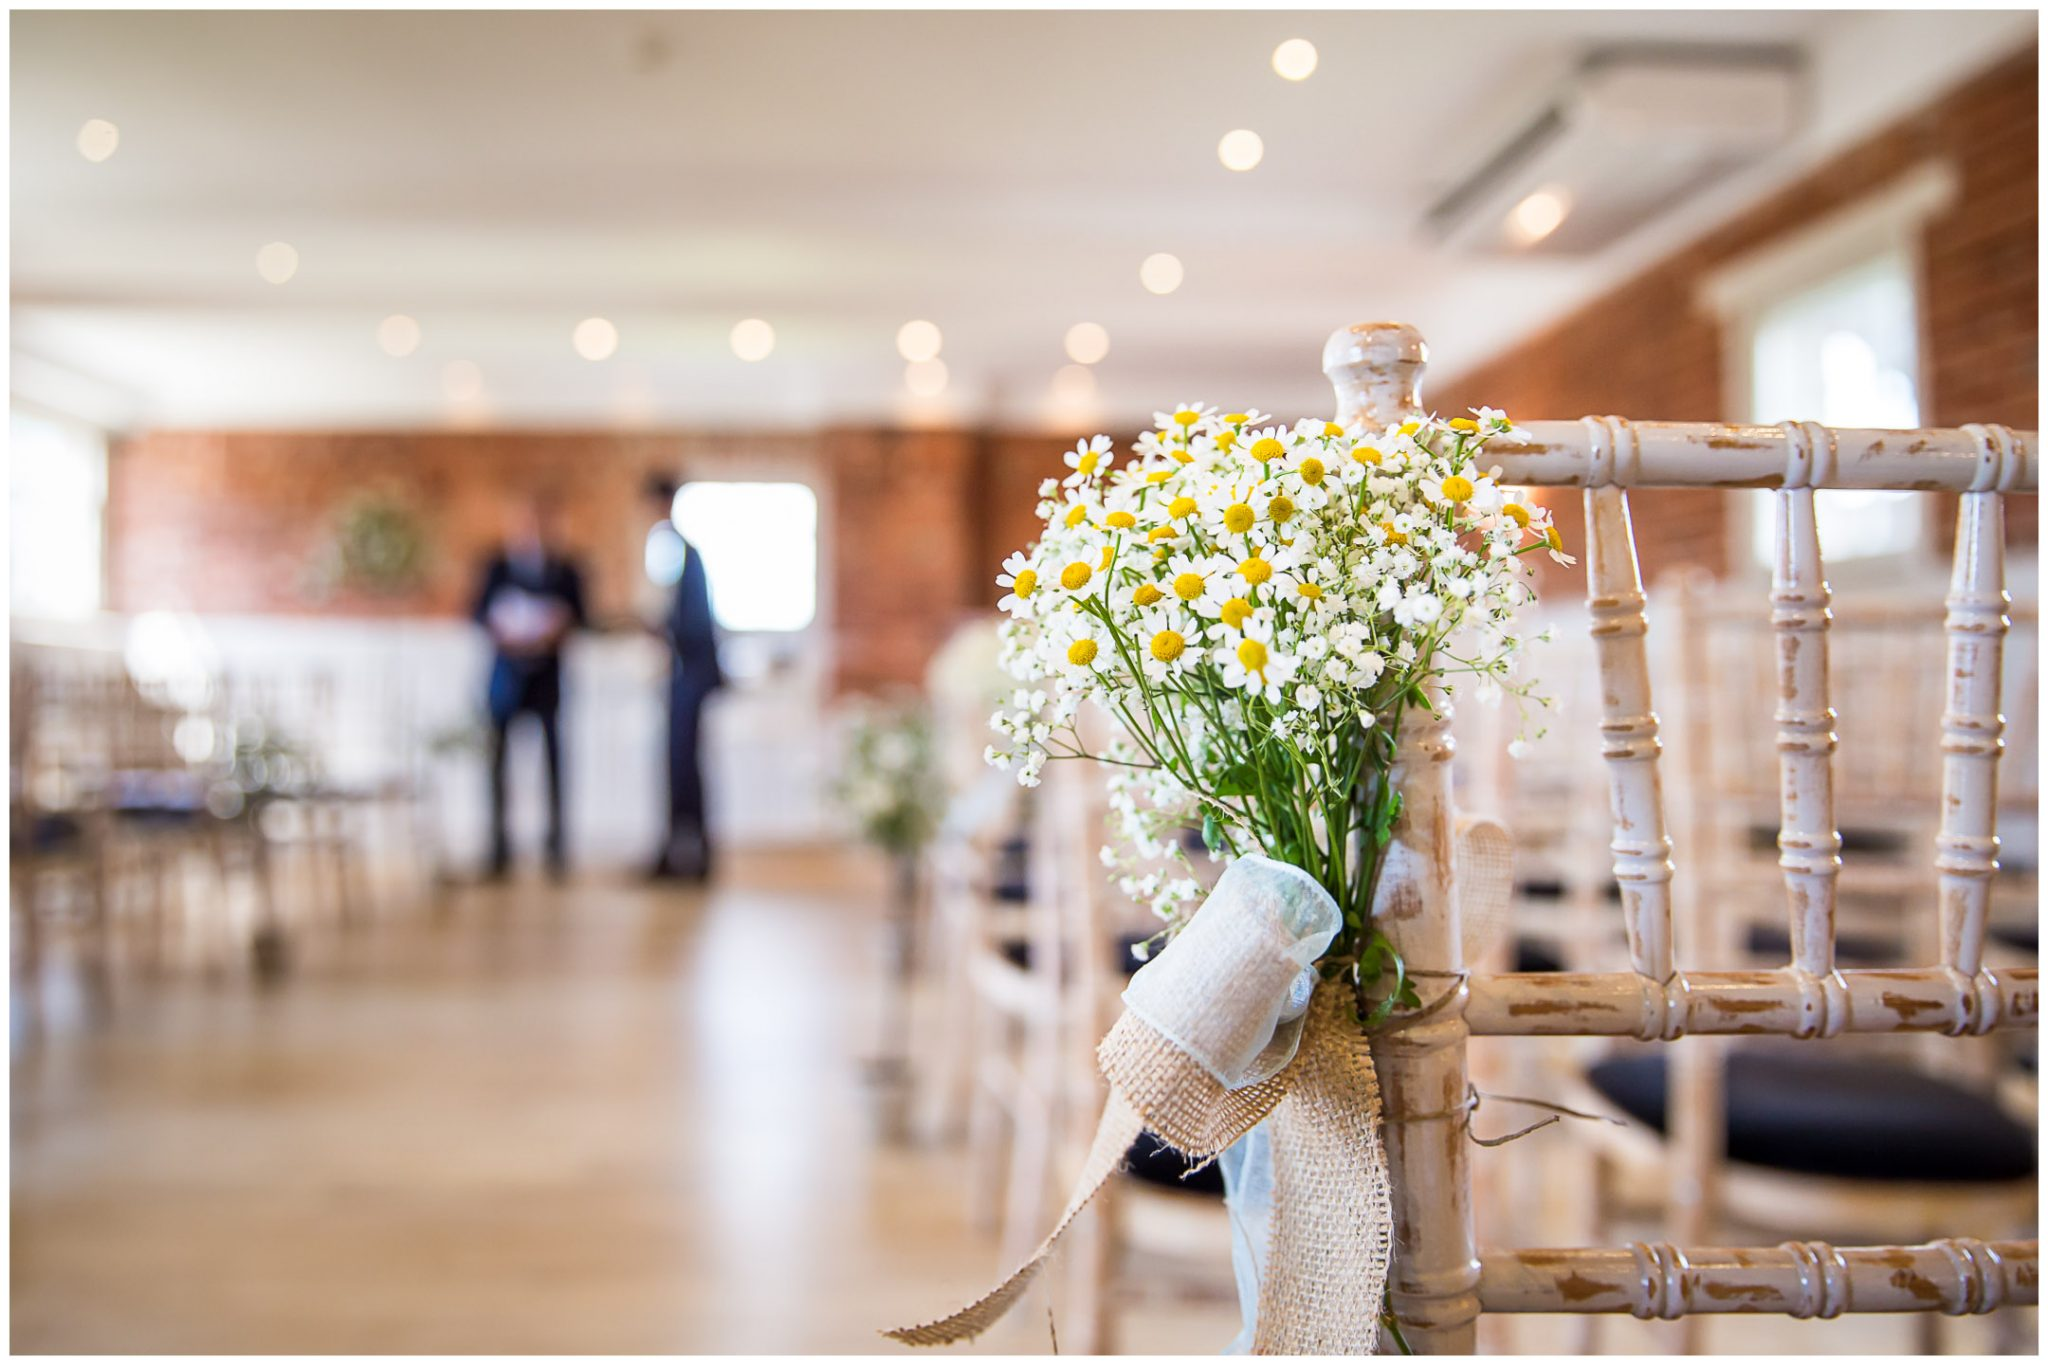 Sopley Mill Summer wedding chair decorations in ceremony room